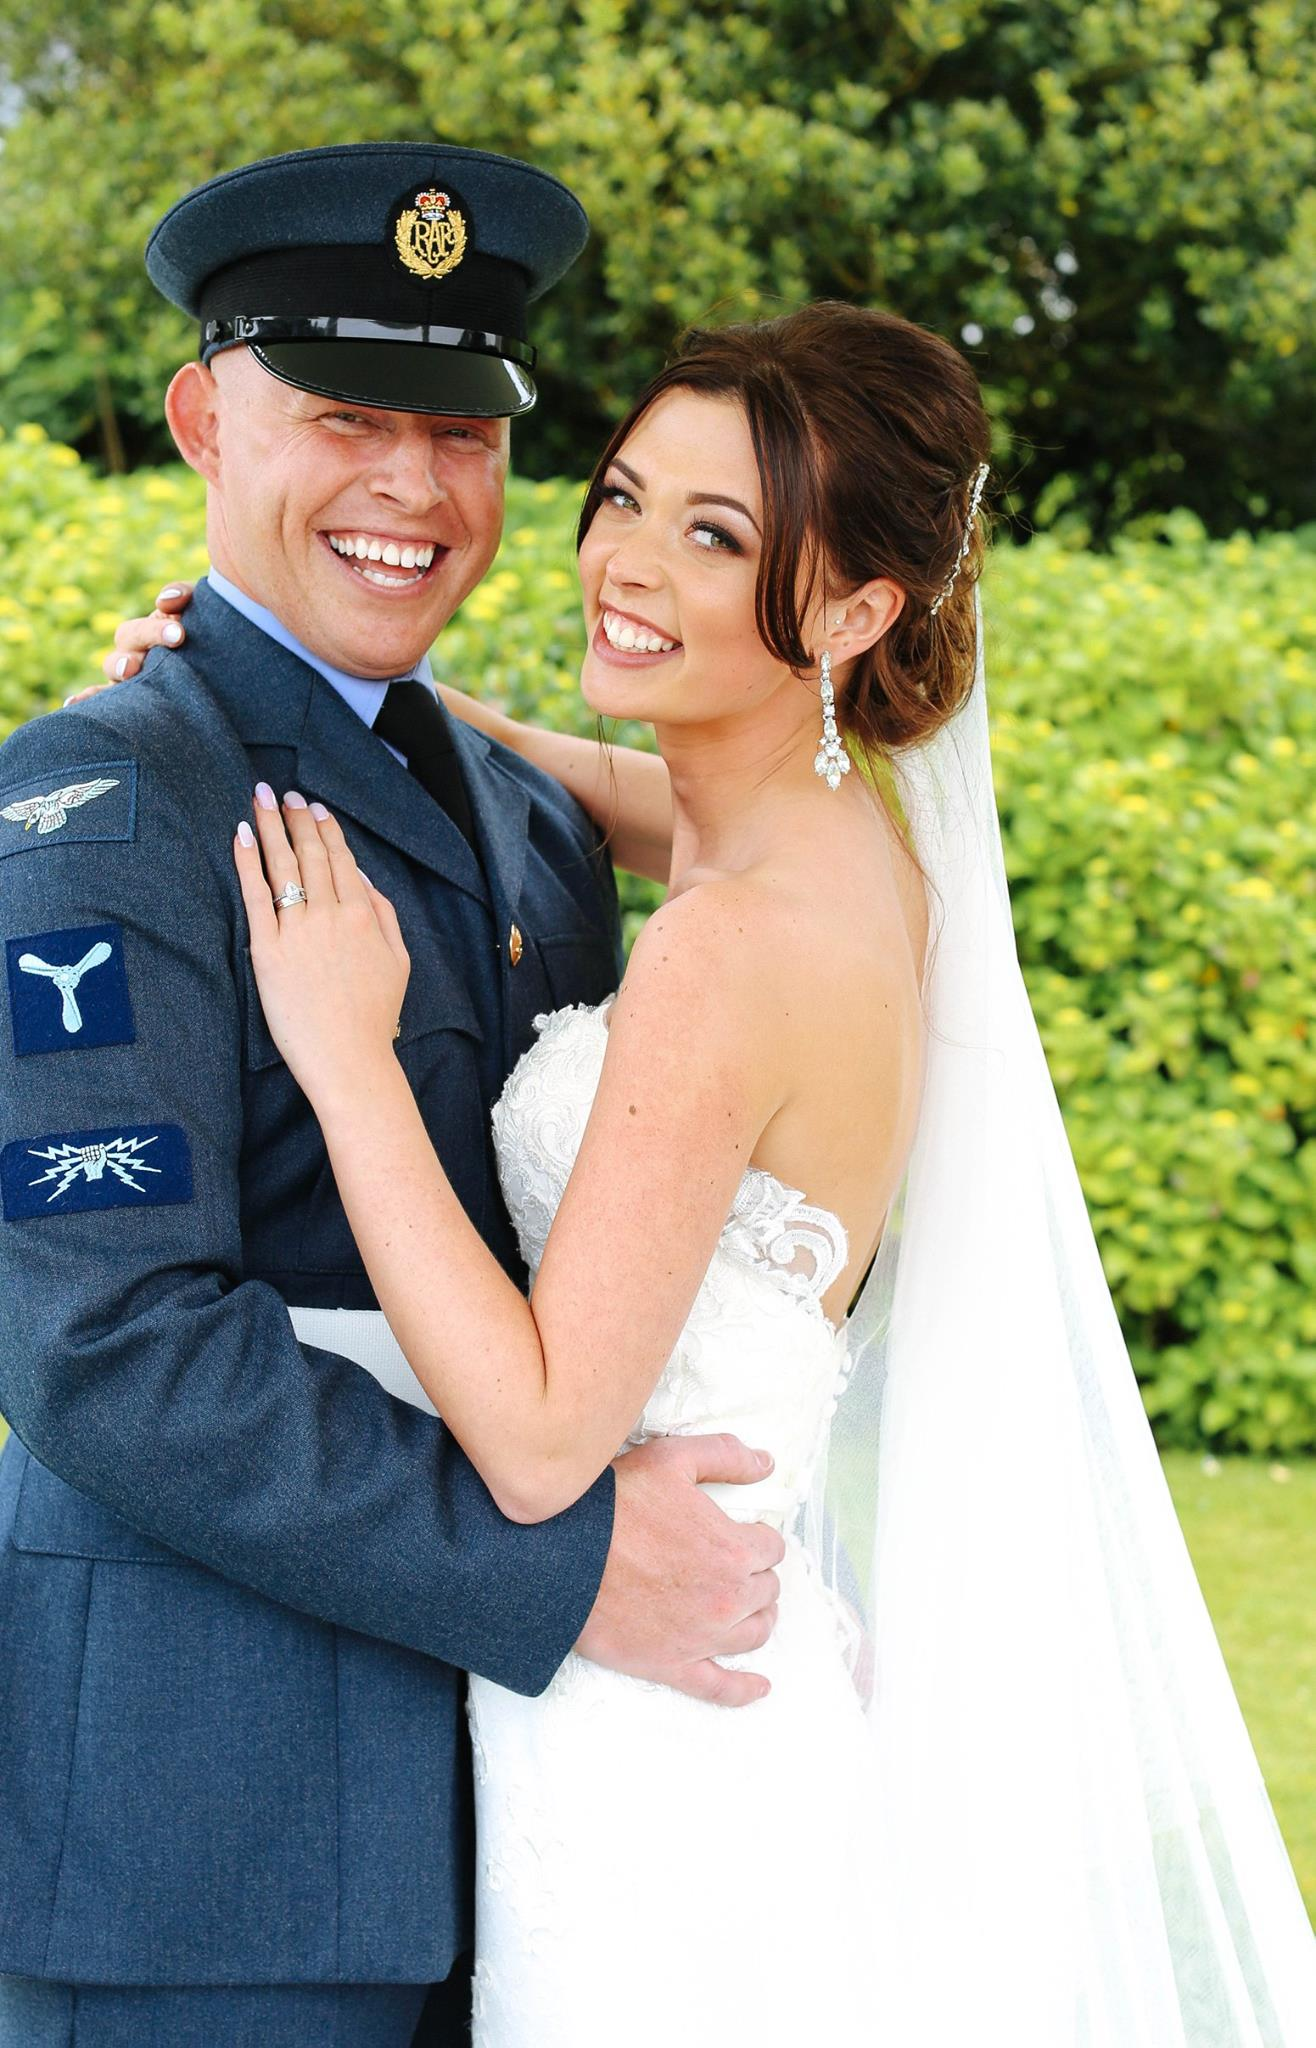 bride, groom, uniform